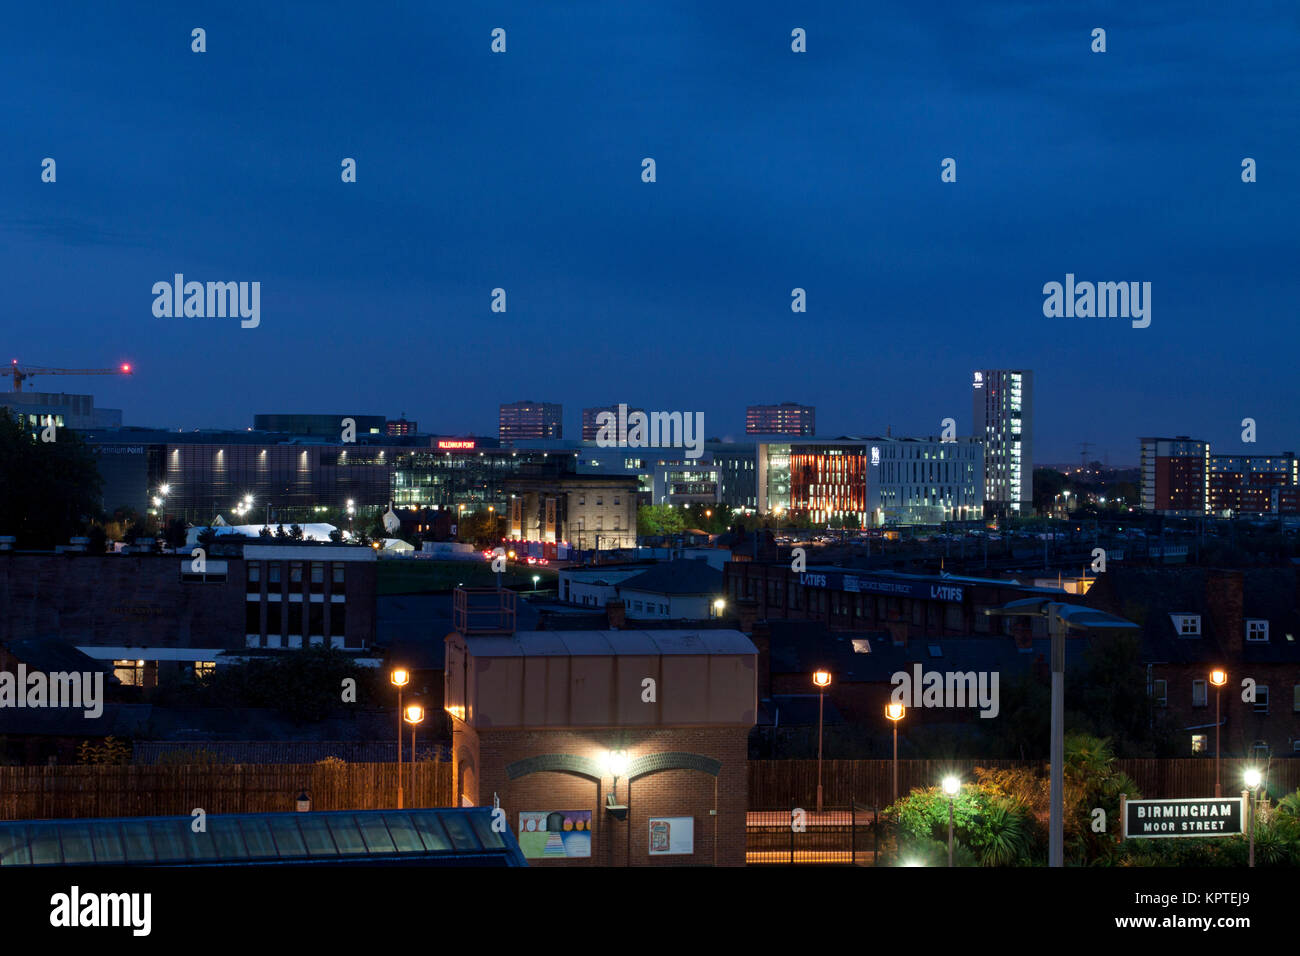 Birmingham in Great Britain by night - Stock Image